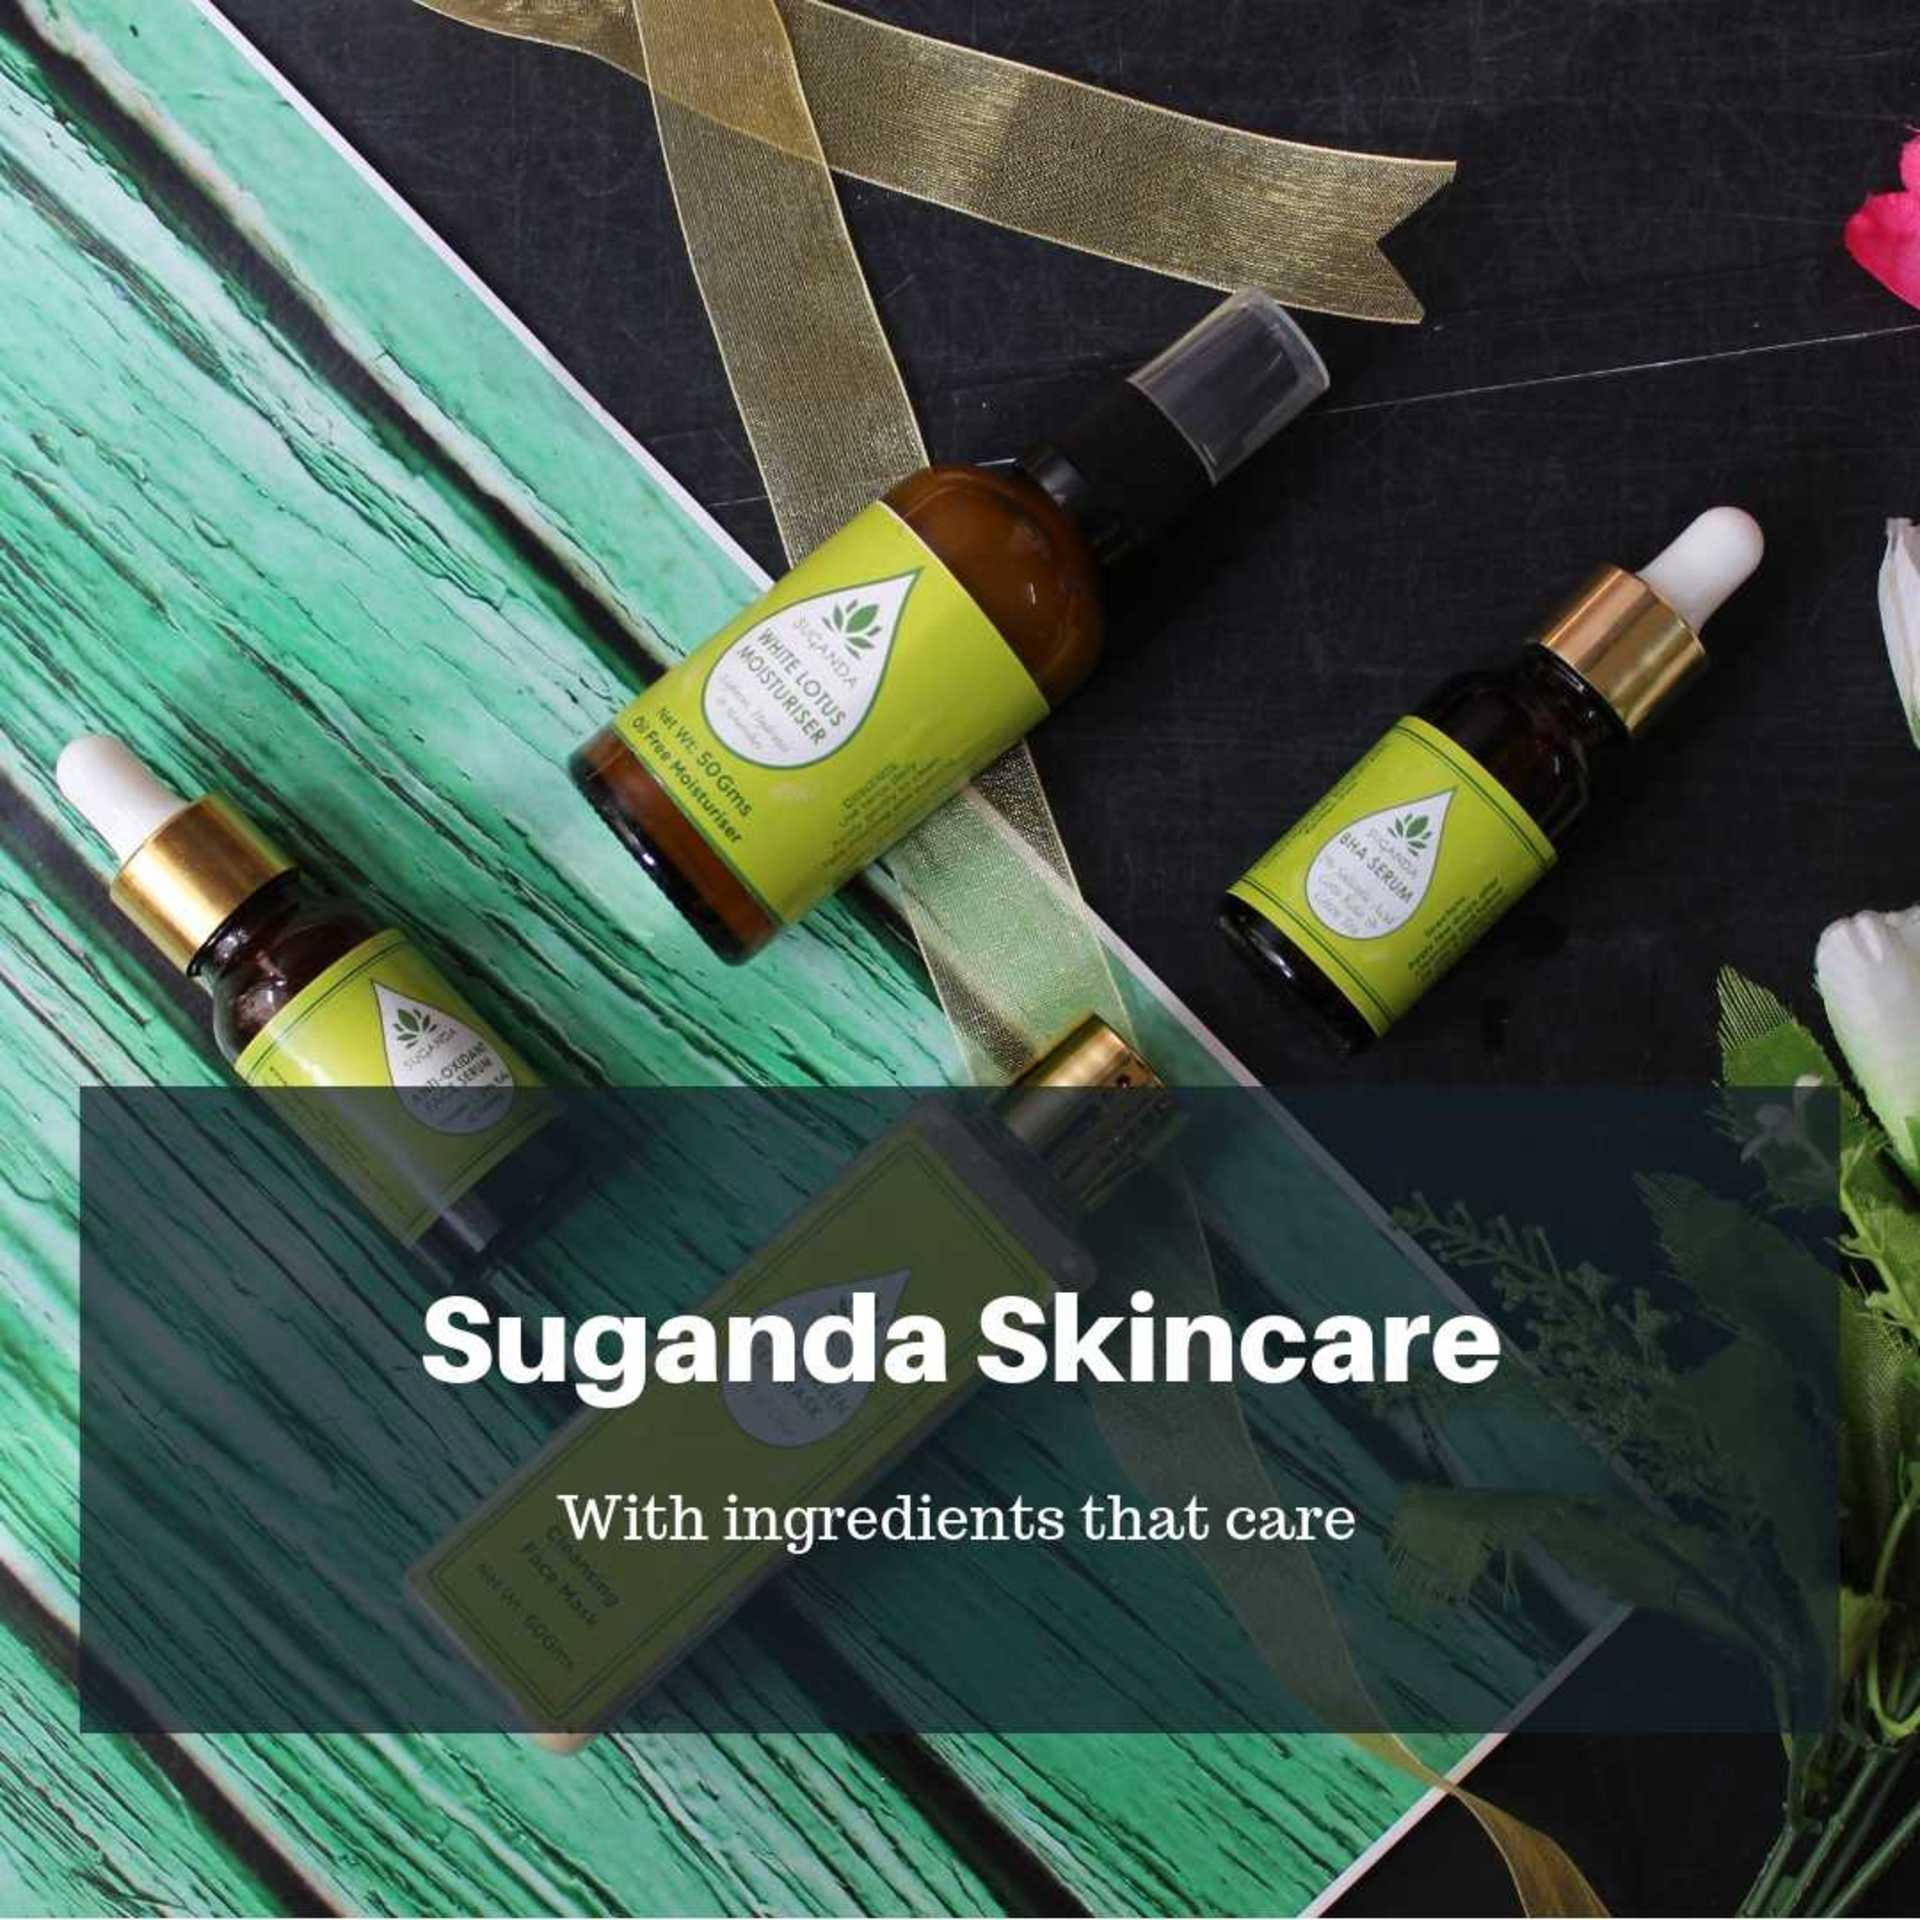 IshtyleAwhile - A Chennai based Indian Fashion Blog - suganda skincare organic handmade natural india ishtyleawhile